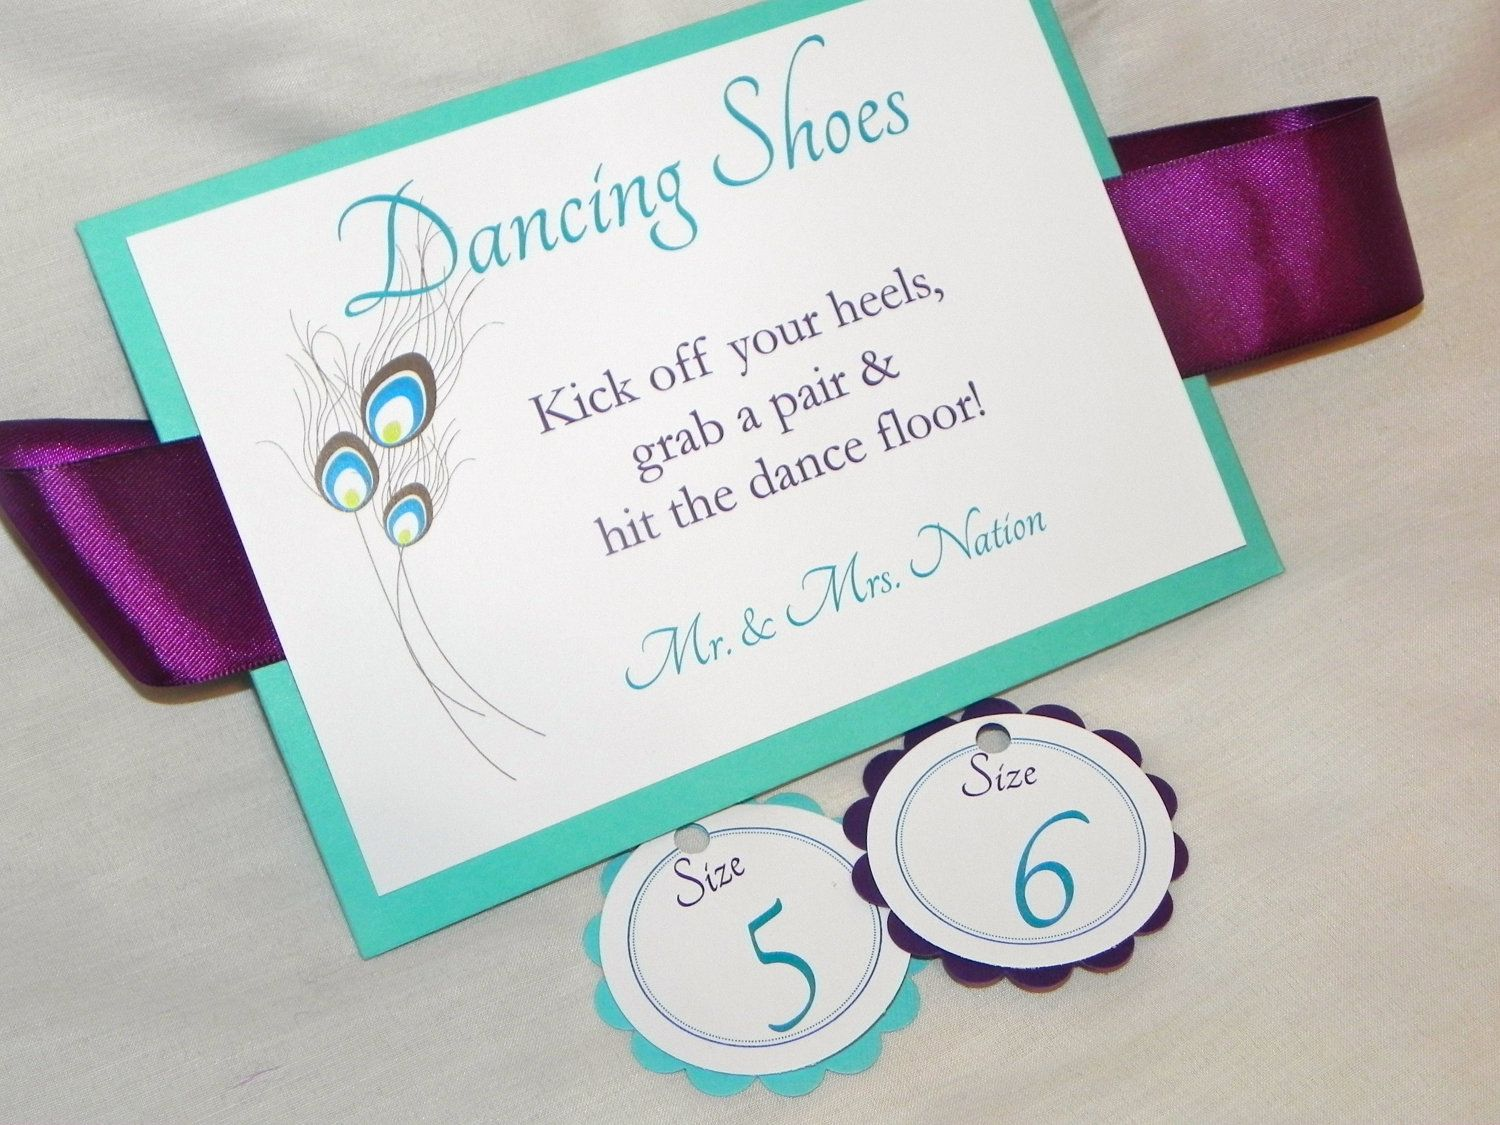 flip flop baskets for weddings and sayings - Google Search   Our ...